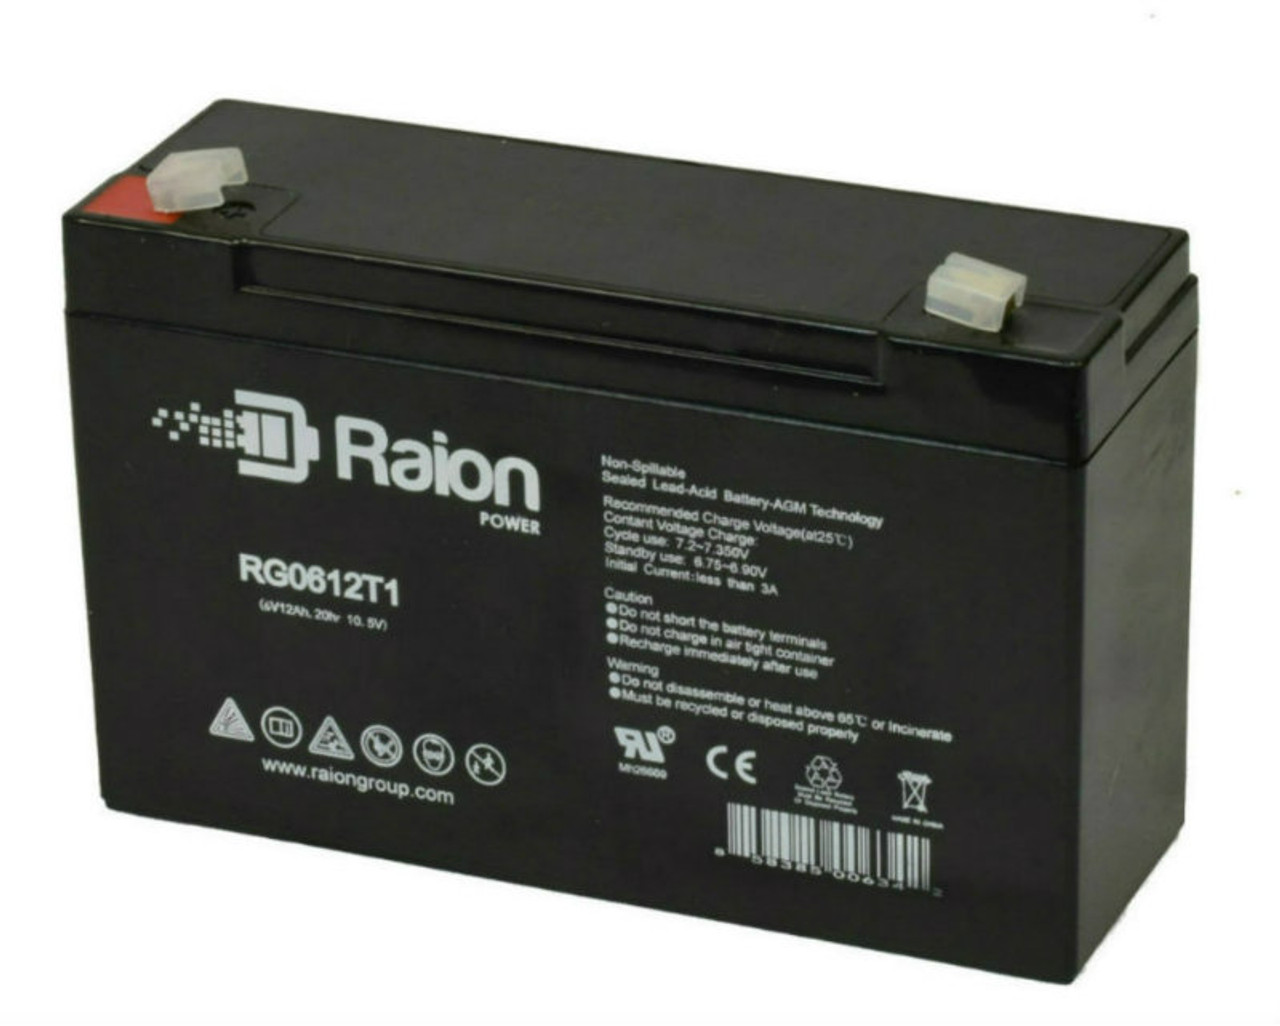 Raion Power RG06120T1 Replacement Battery Pack for Chloride CMF25Y2 emergency light